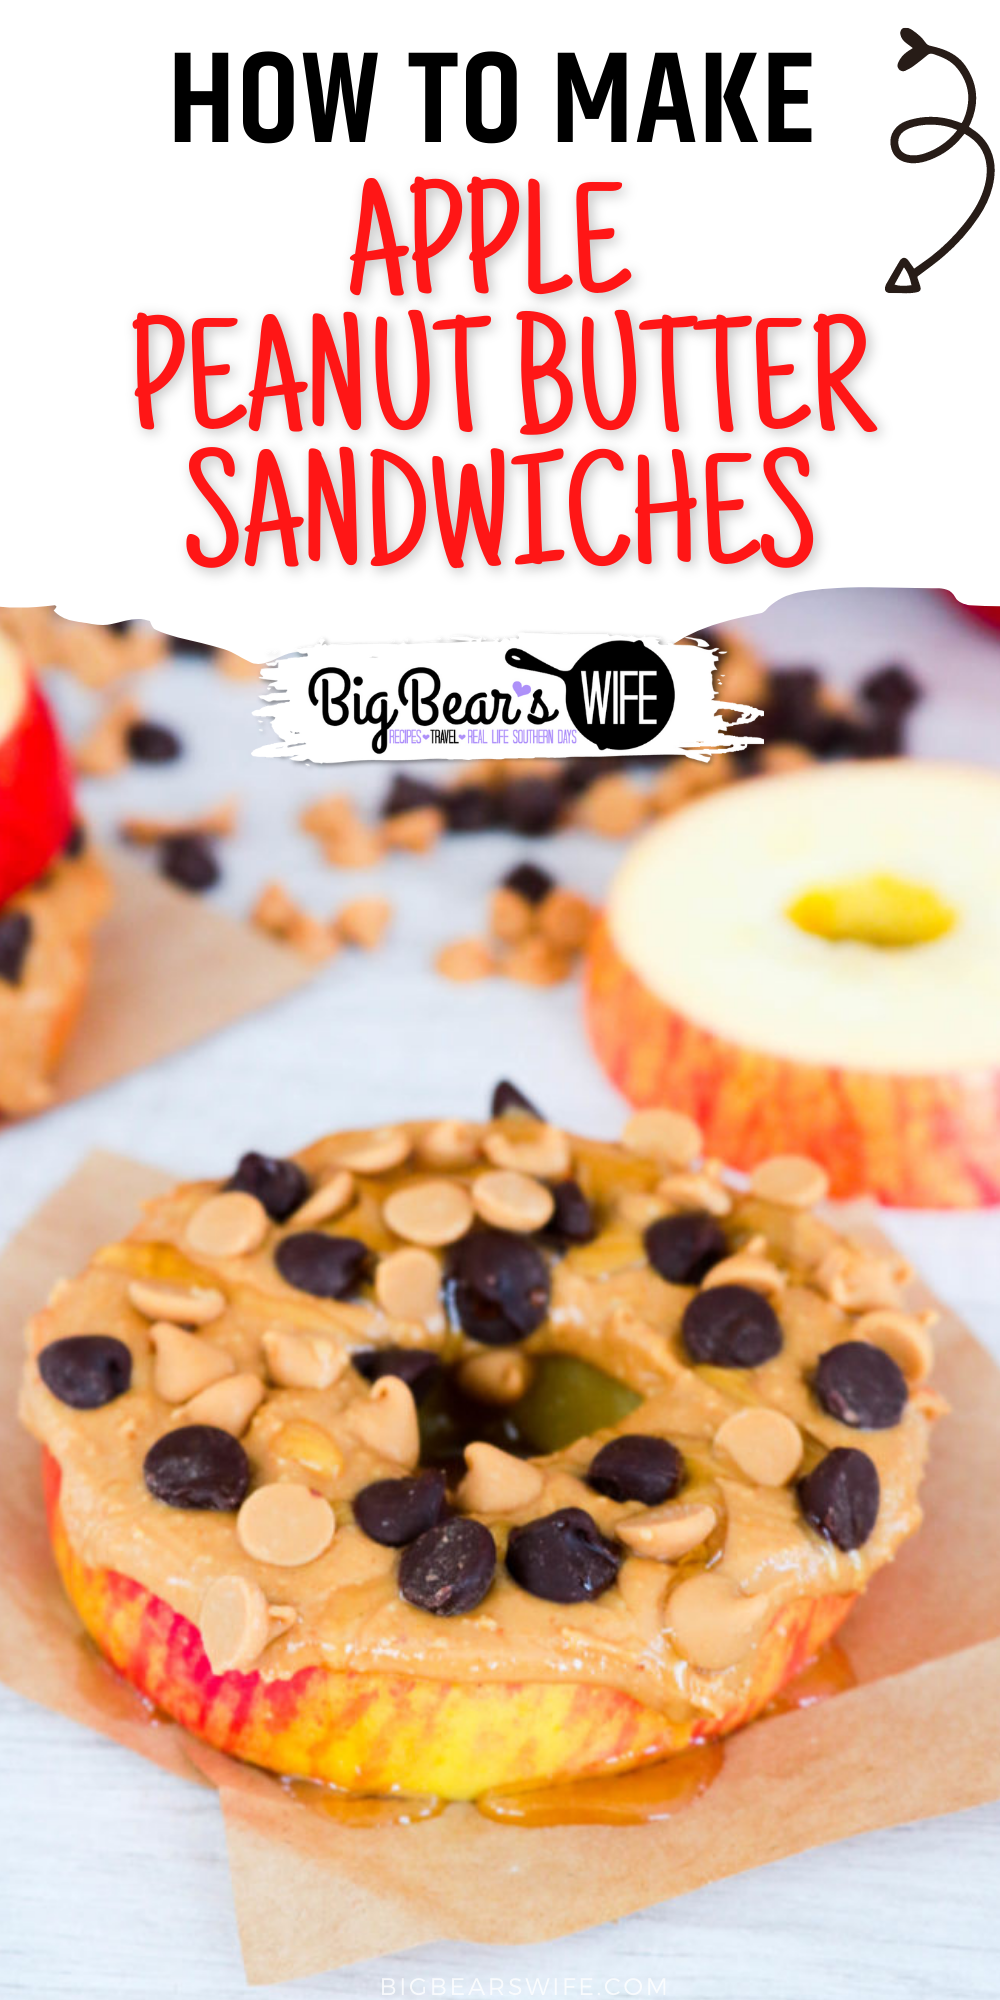 """These Apple Peanut Butter Sandwiches are fun and easy to make! Eat these apple """"sandwiches"""" with just peanut butter or add in all sorts of treats like chocolate chips, peanut butter chips, honey, oats, or raisins. via @bigbearswife"""